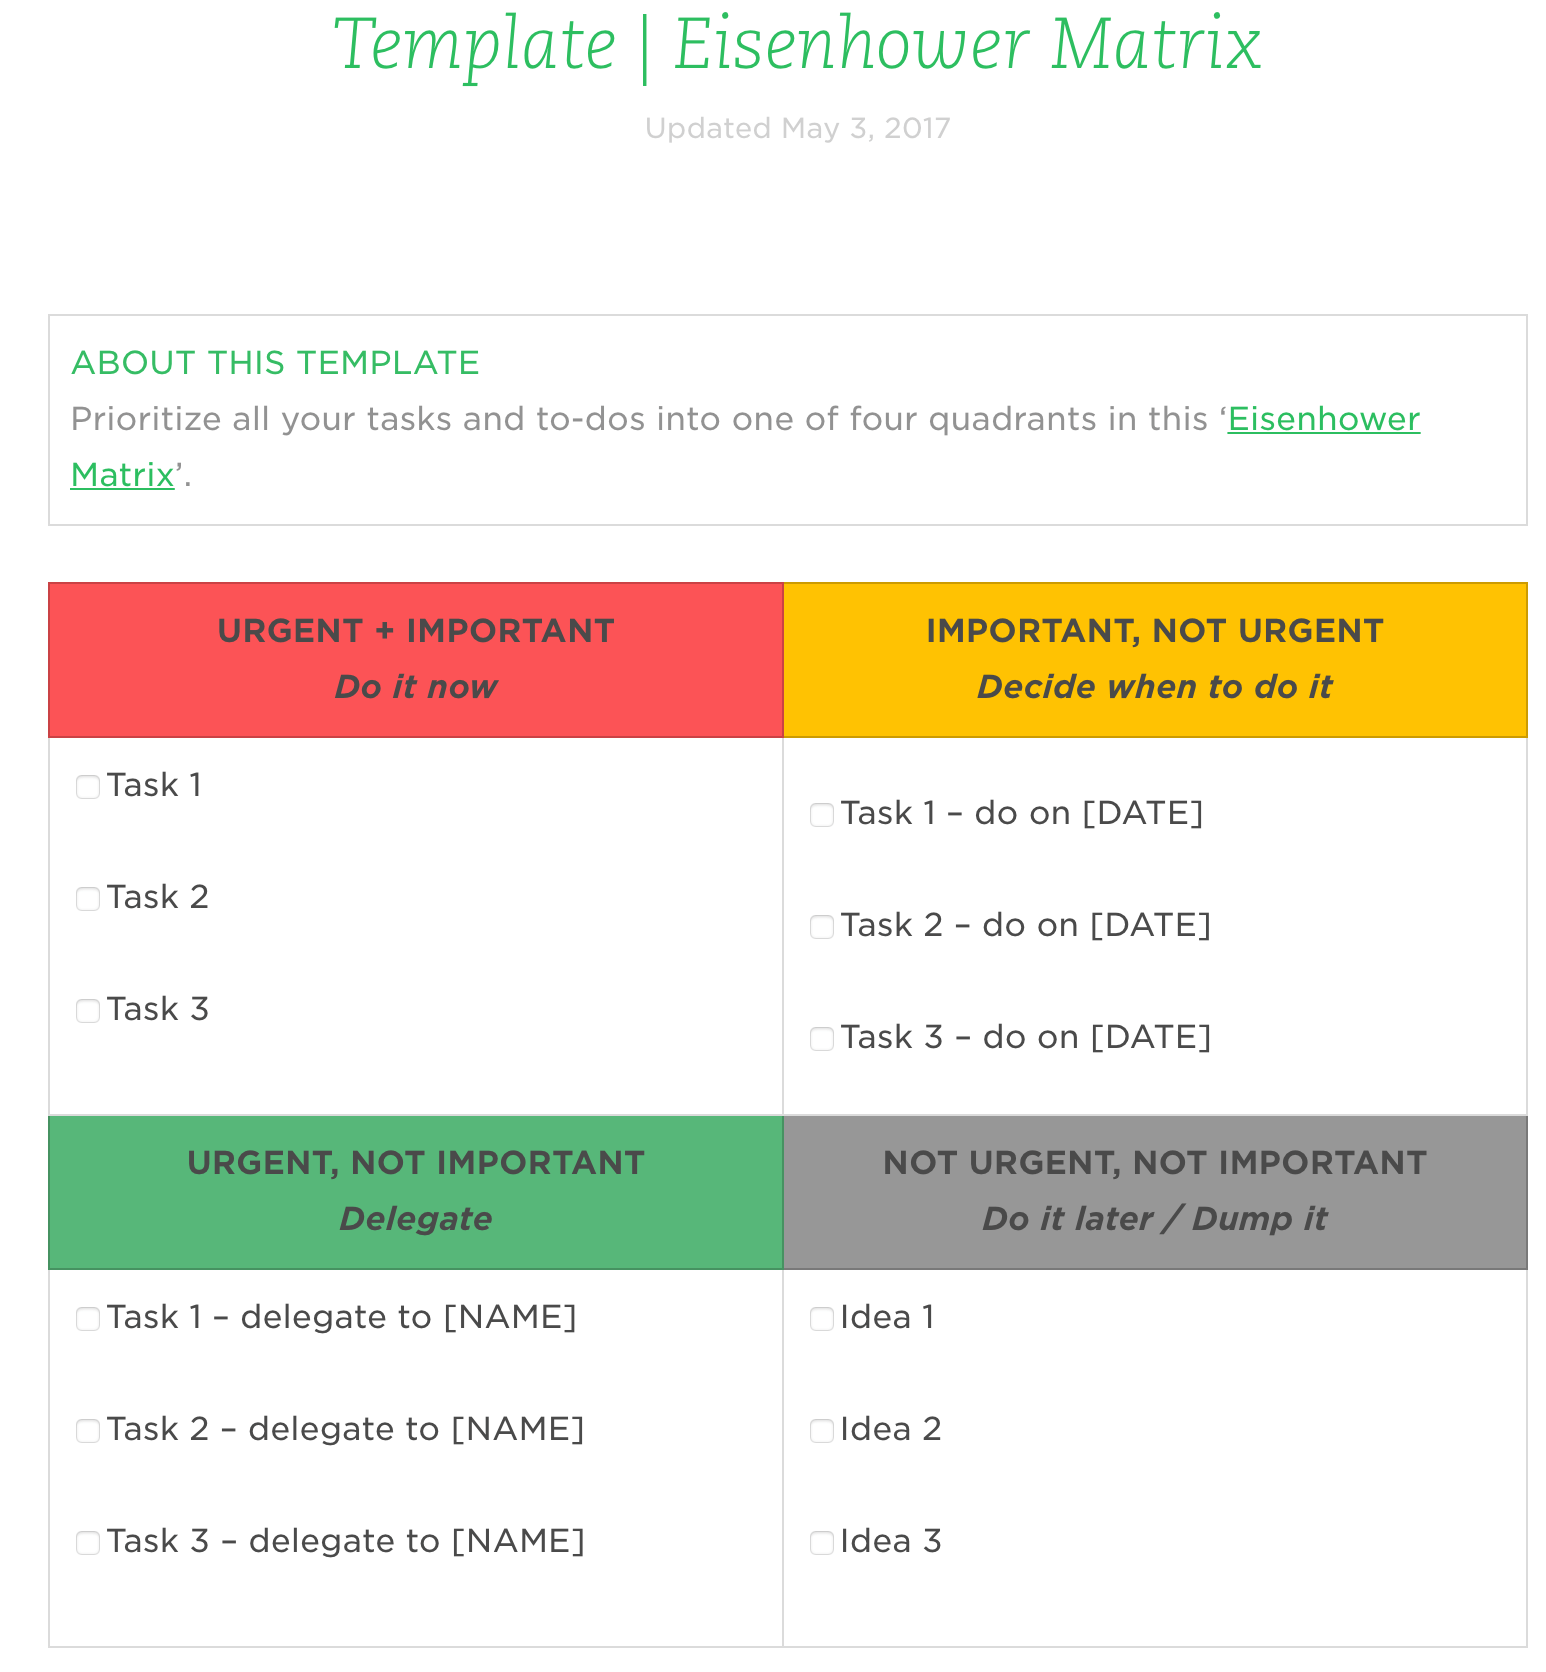 Evernote Templates - Eisenhower Matrix